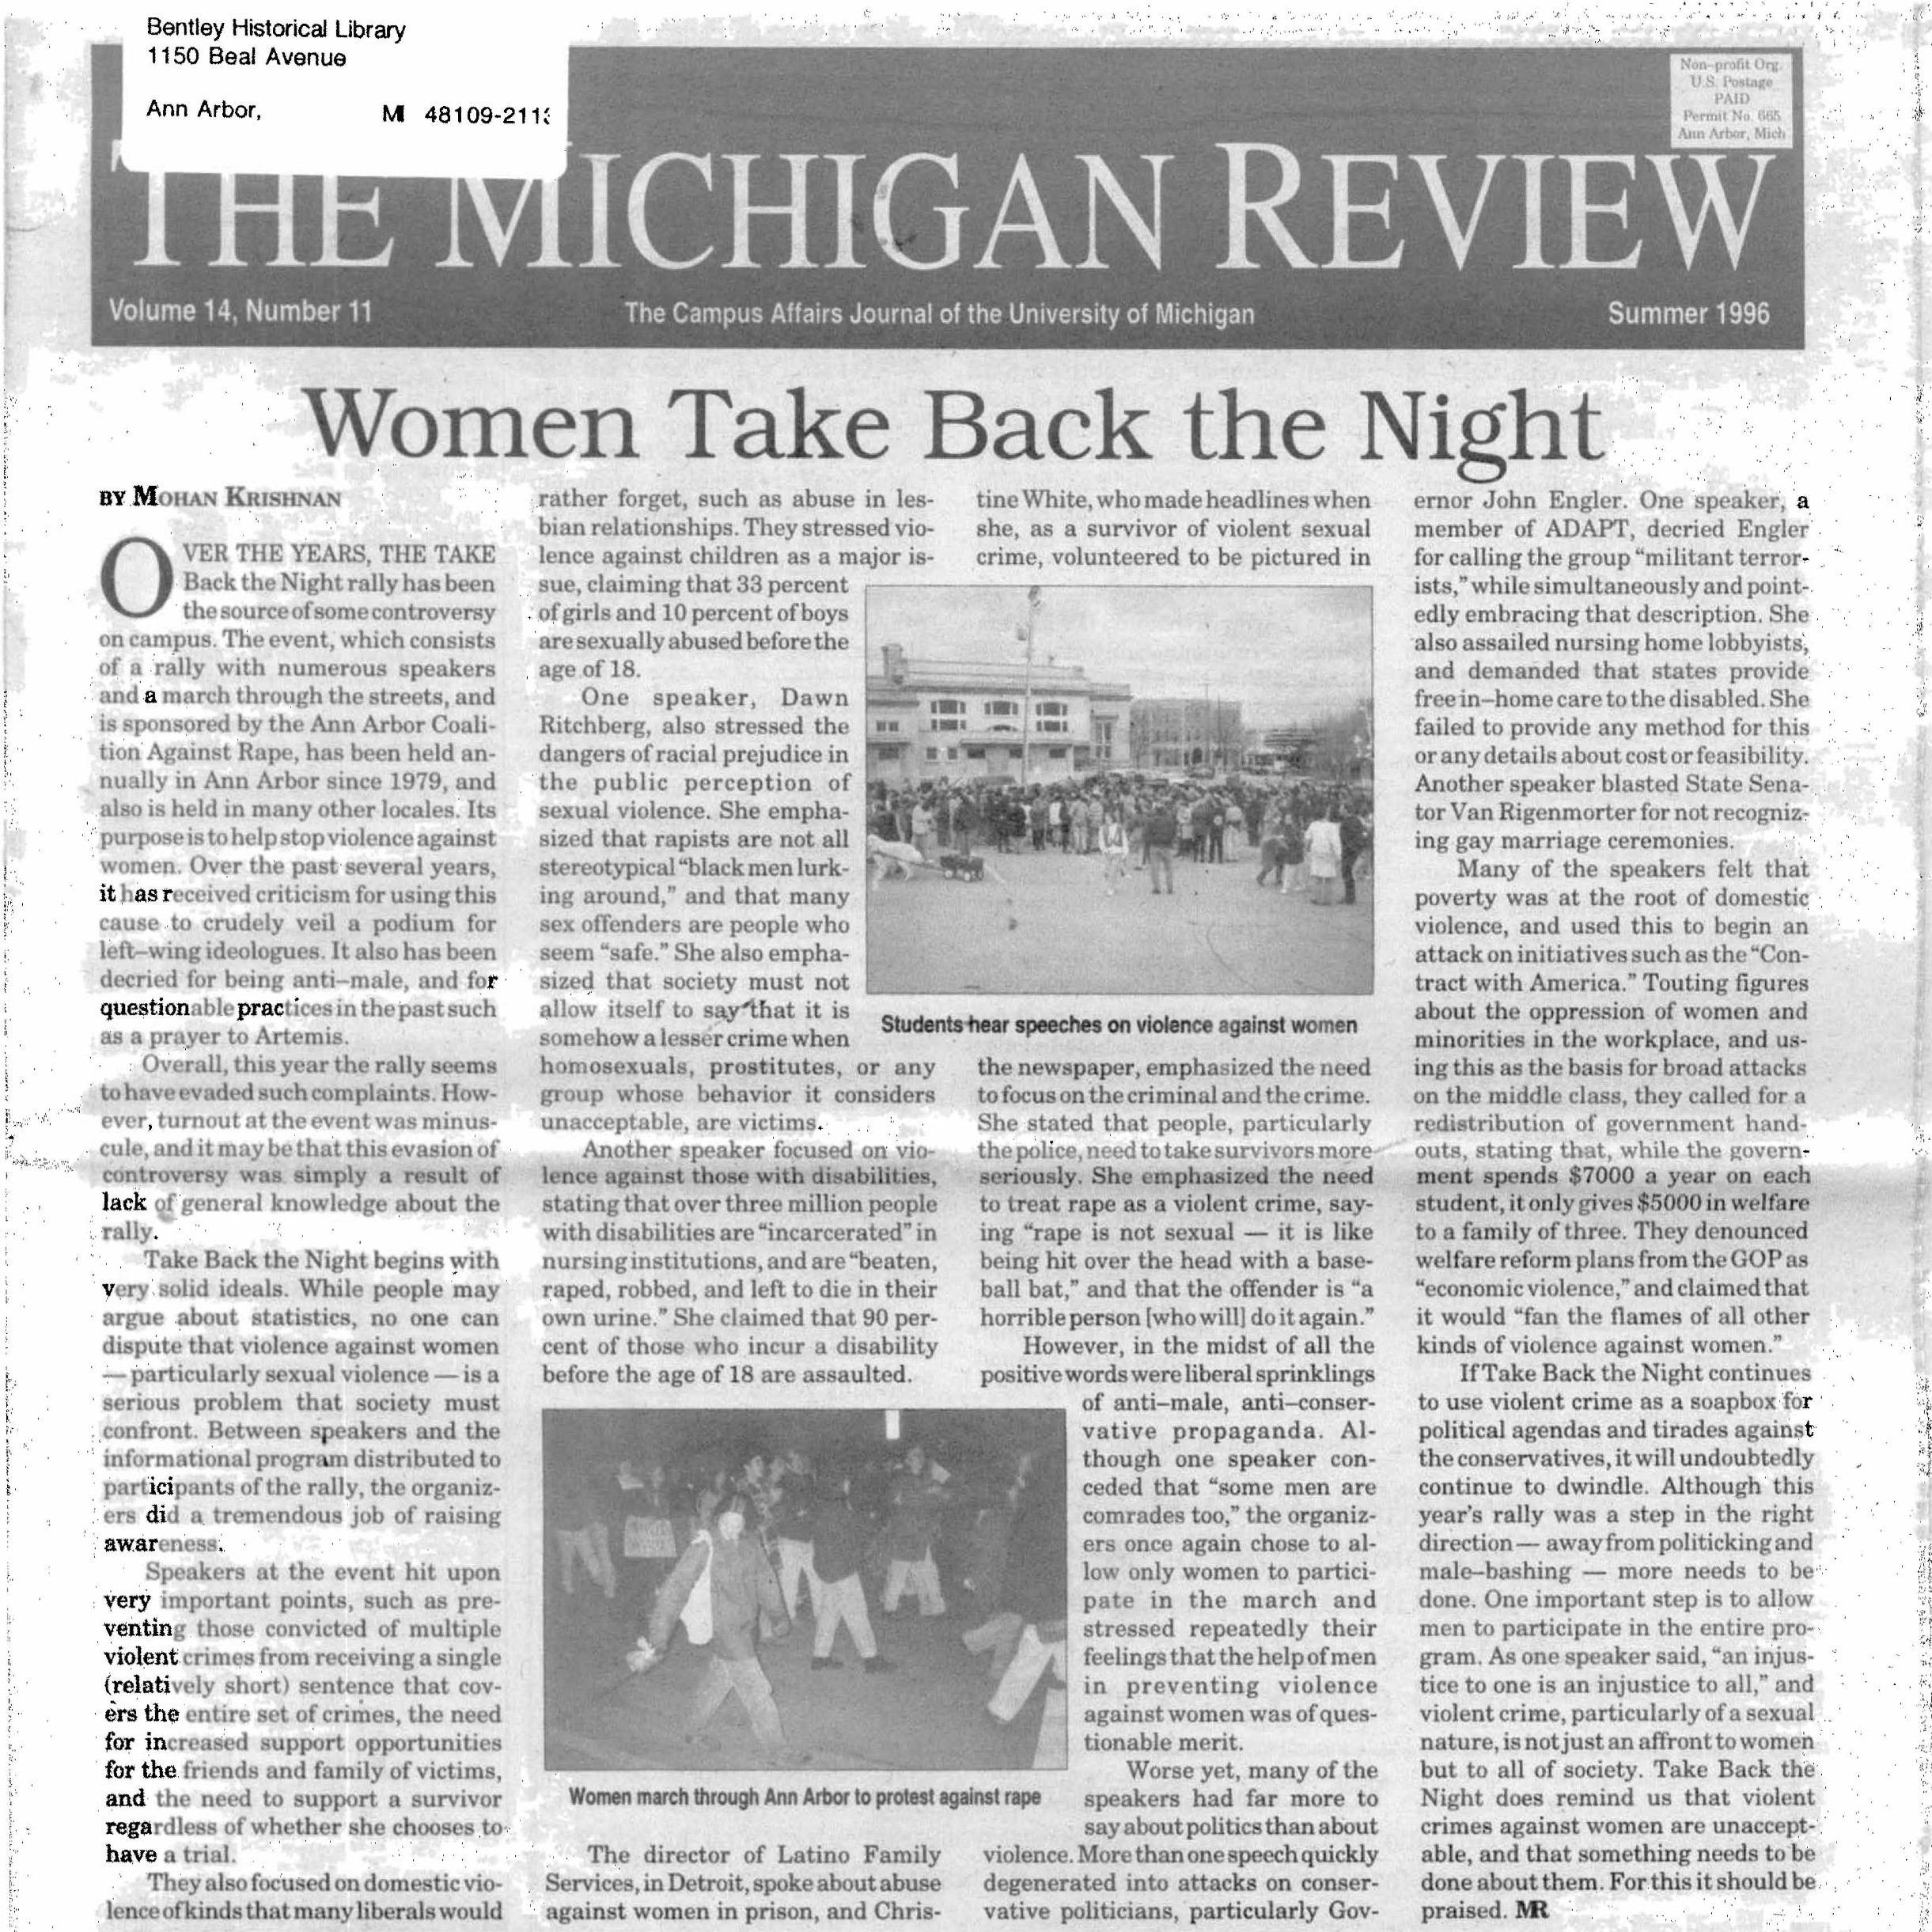 Michigan Review Summer Issue Article